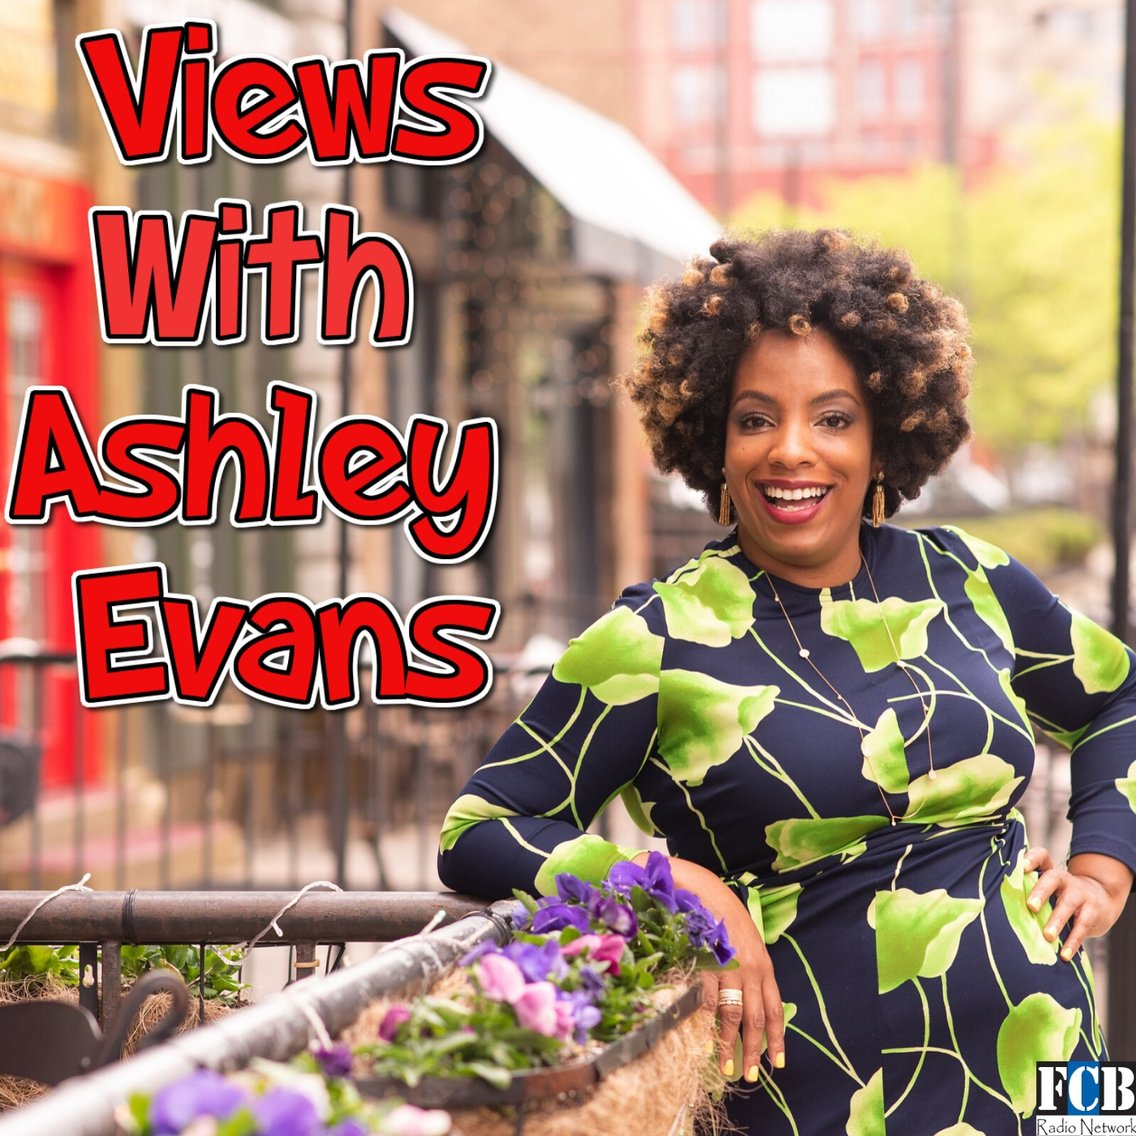 Views with Ashley Evans - Cover Image